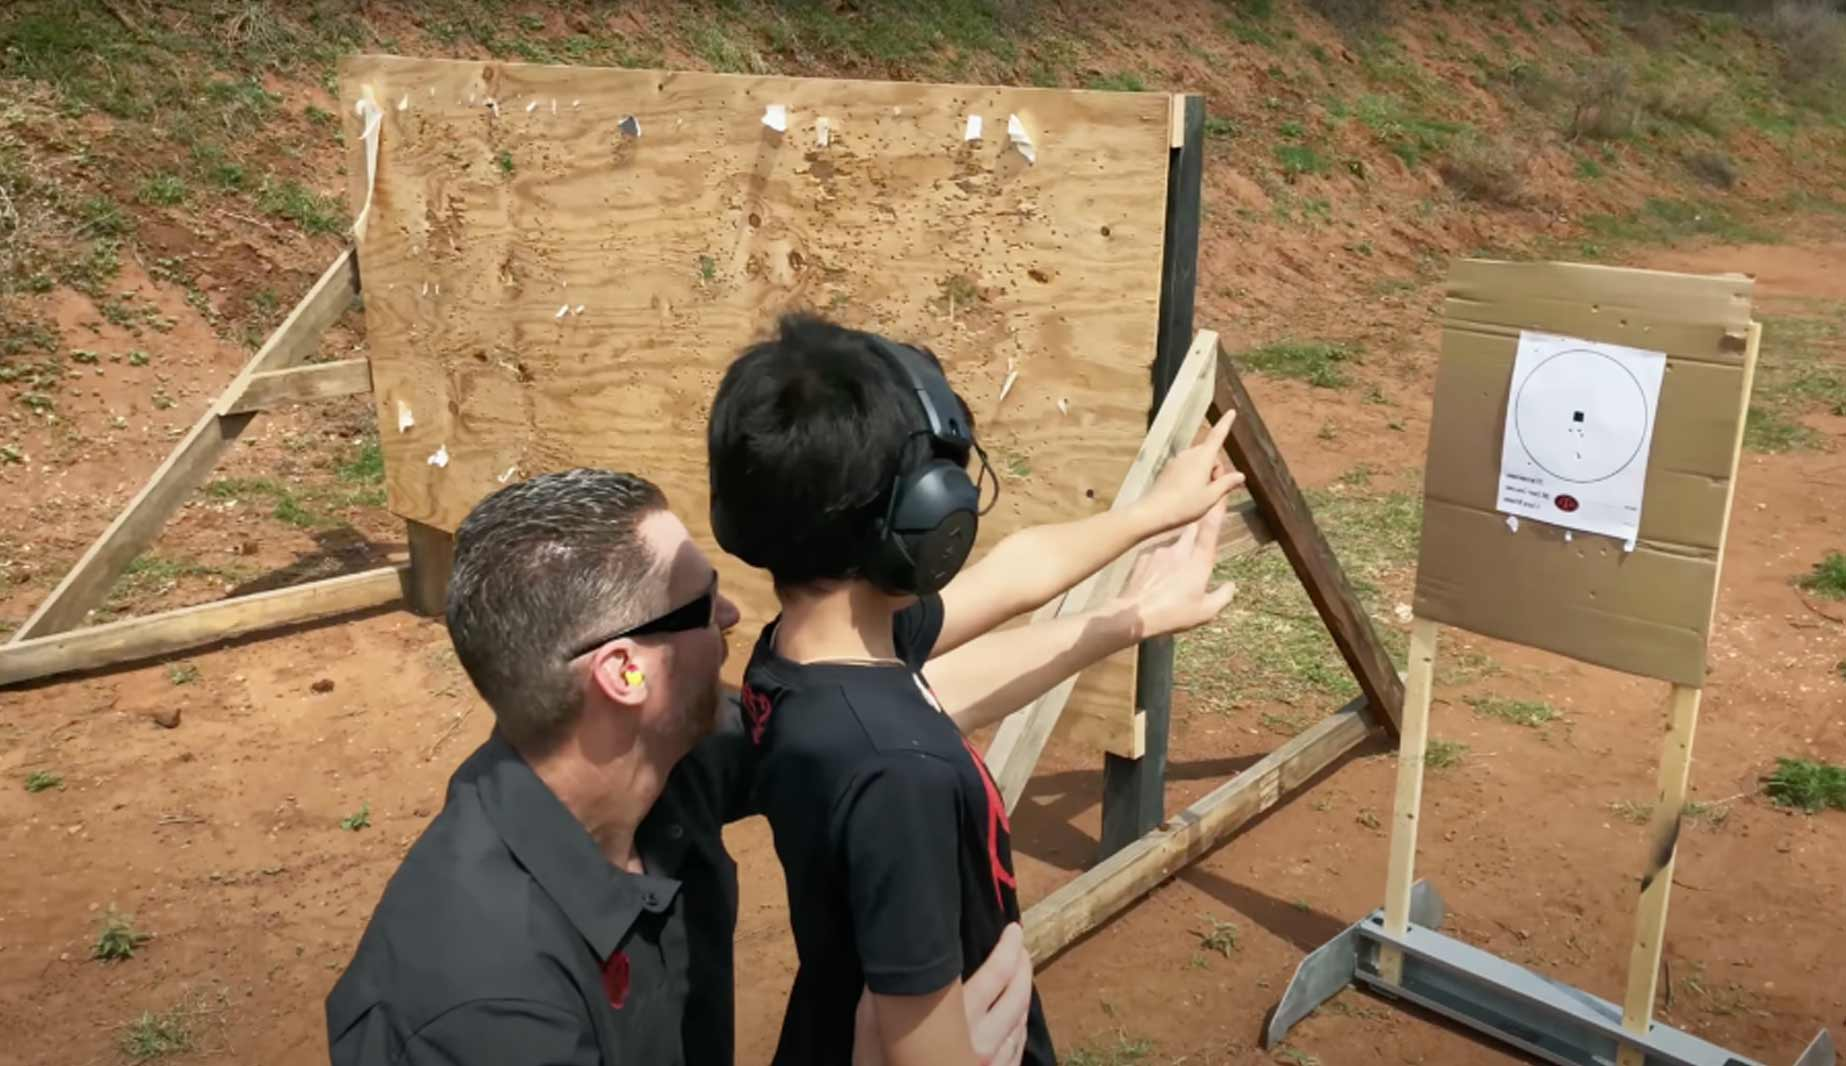 Instructor helping a new shooter child with his grouping